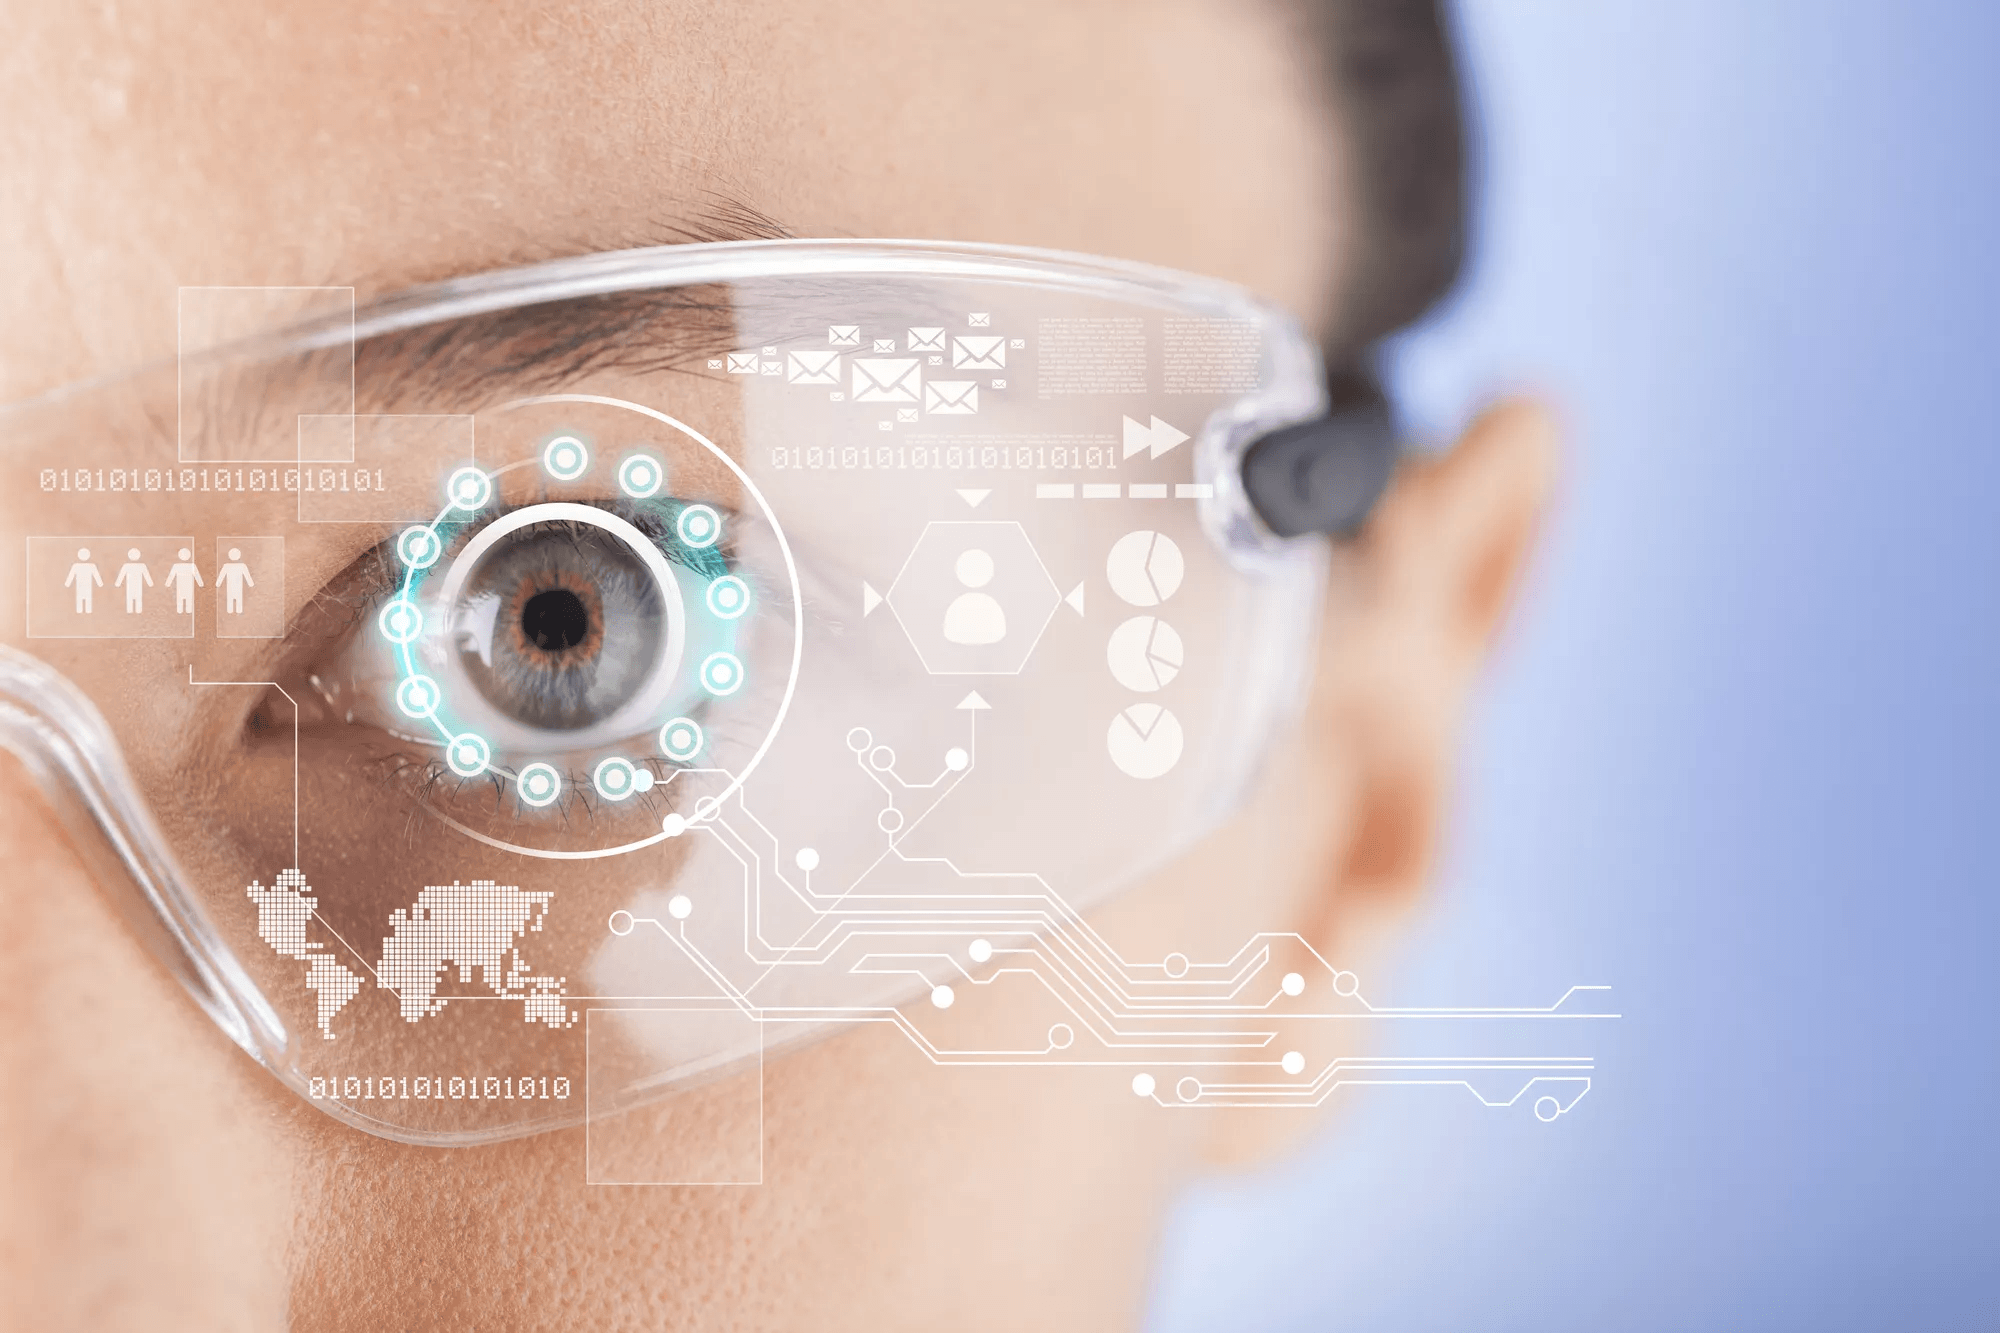 Enterprise Deployments of Augmented Reality